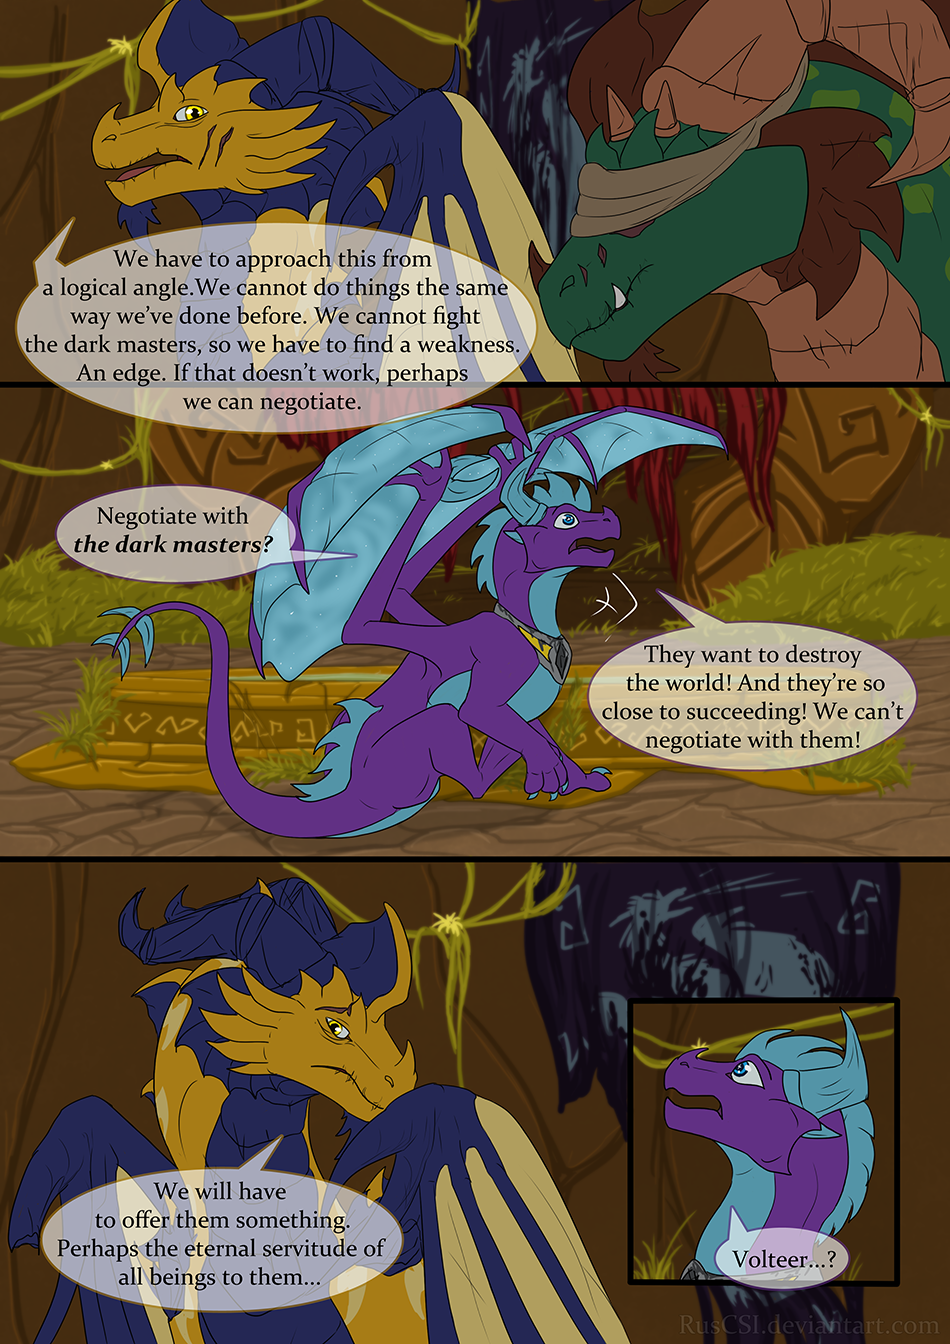 Courage of the cowardly dragon - page 11